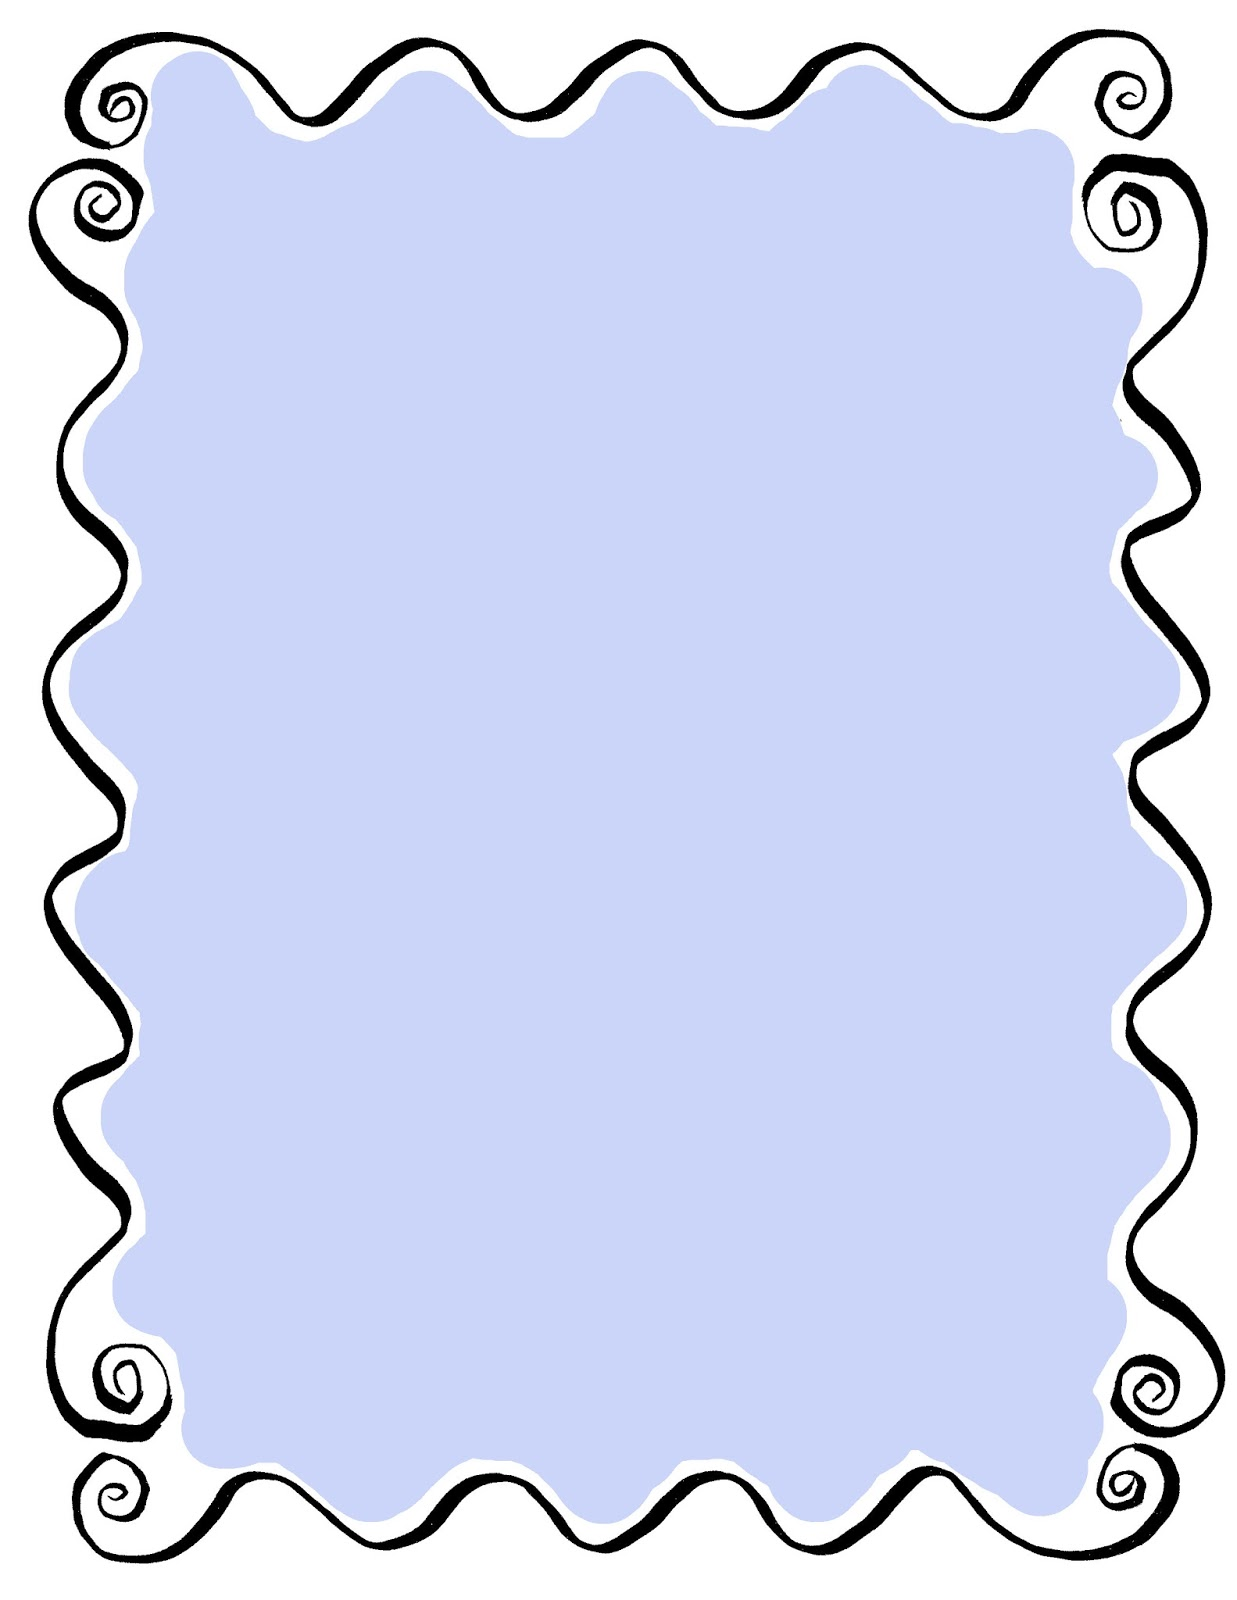 Borders clipart curly, Borders curly Transparent FREE for ... jpg stock